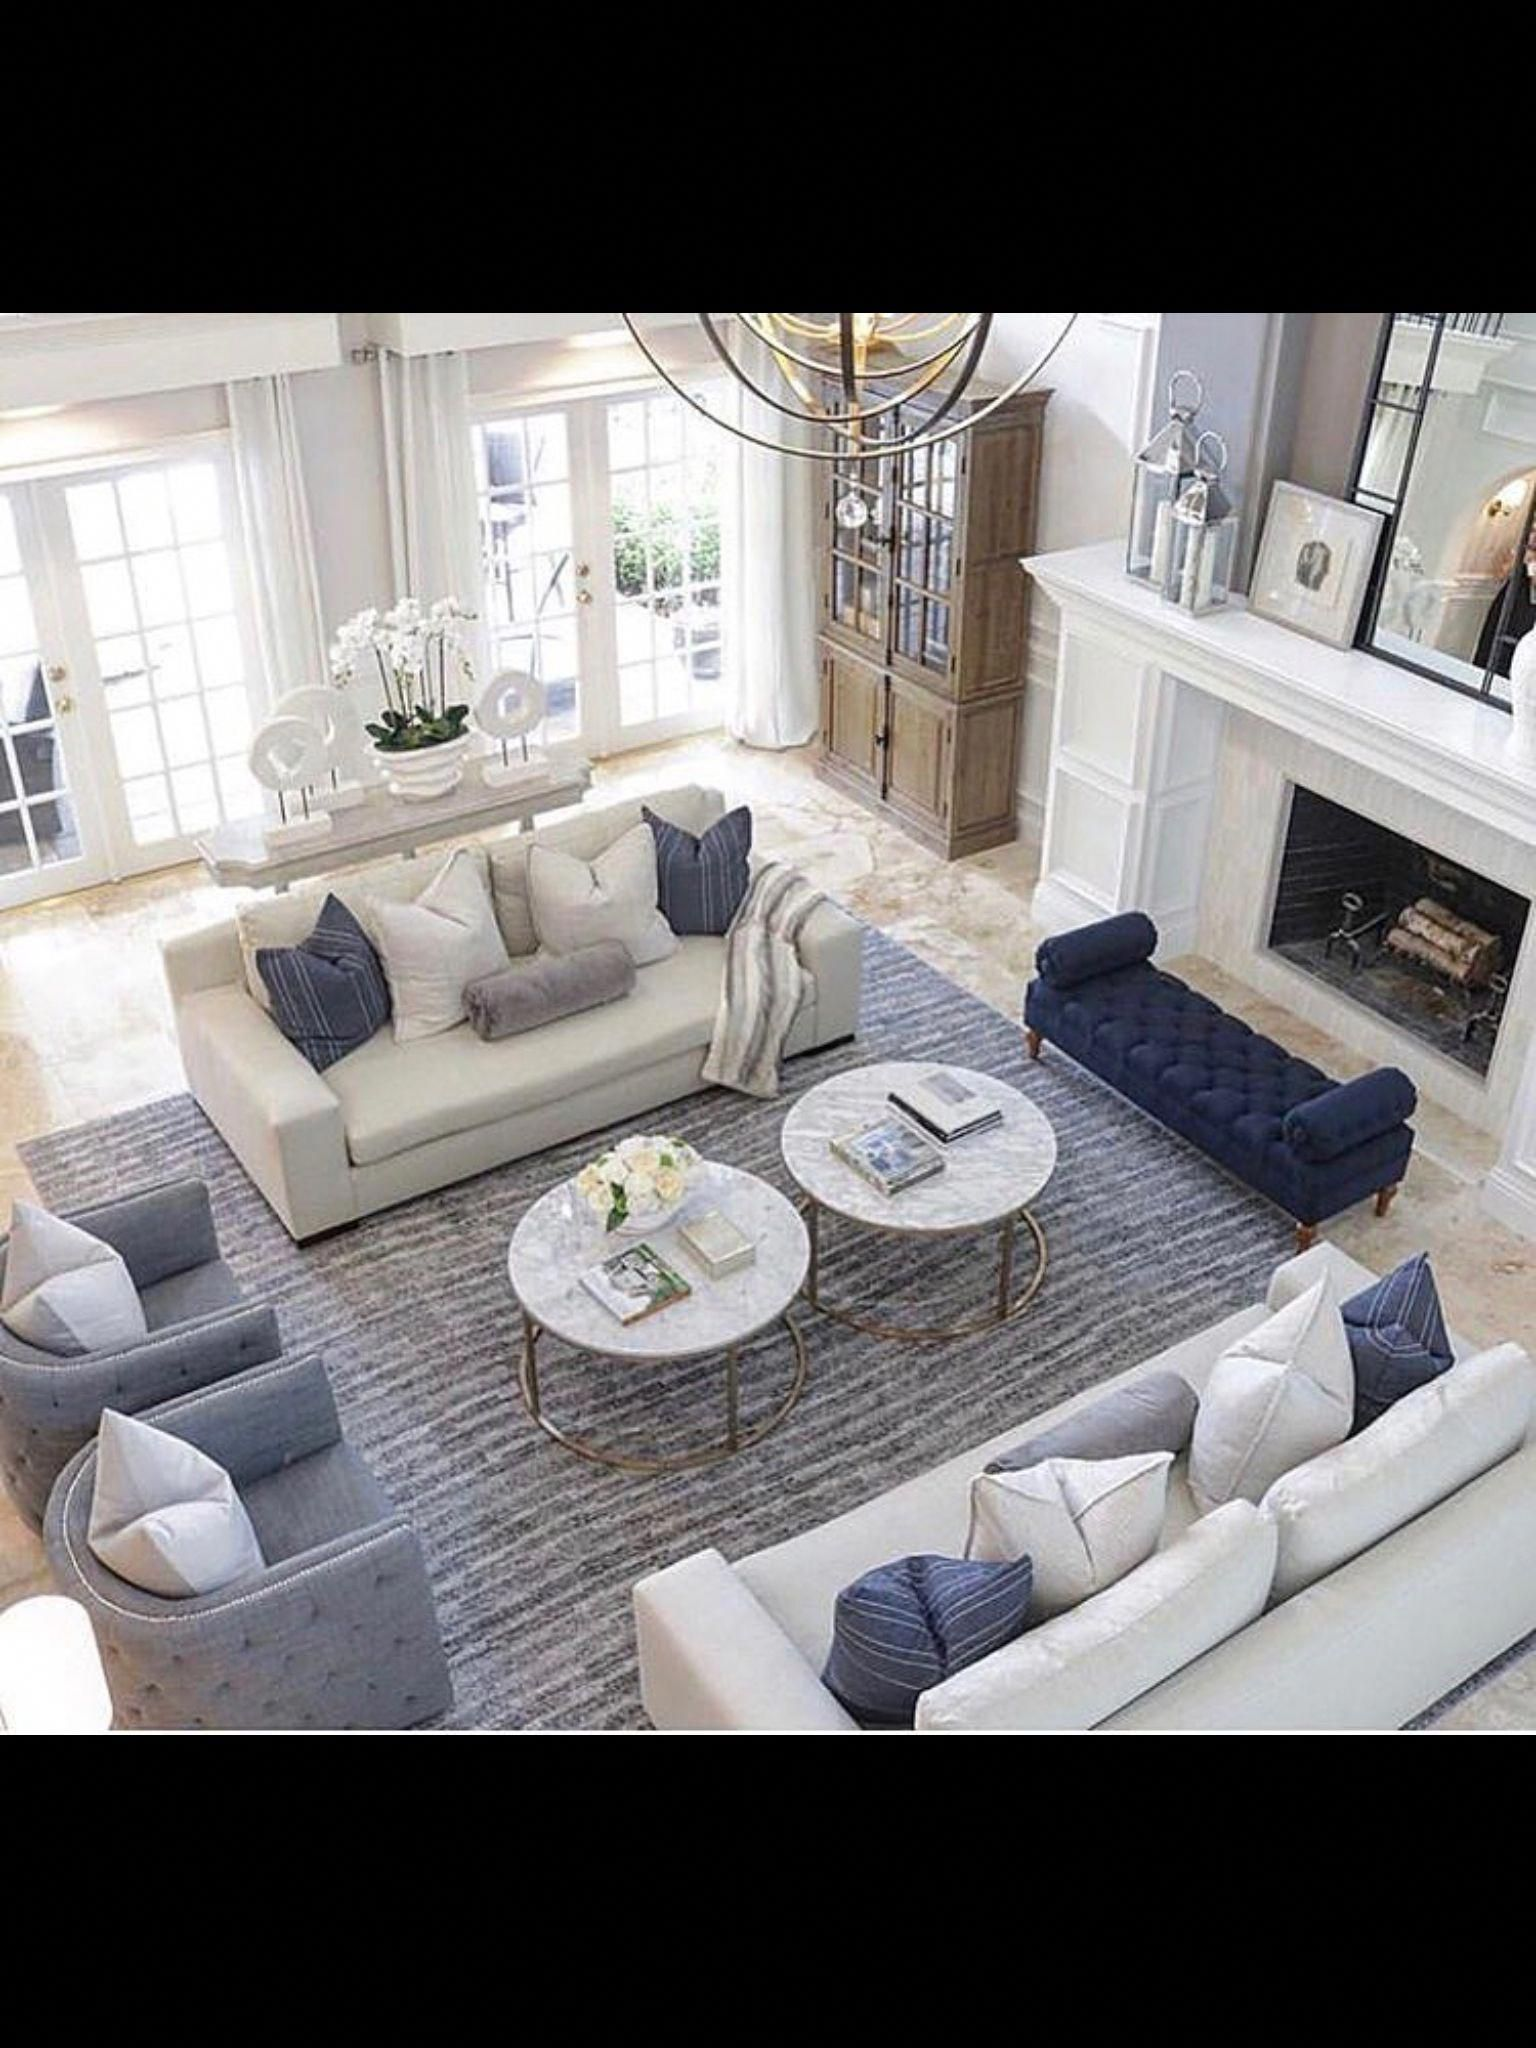 Look at all that seating livingroomdecorations also high quality home living room decoration effect design and ideas rh pinterest